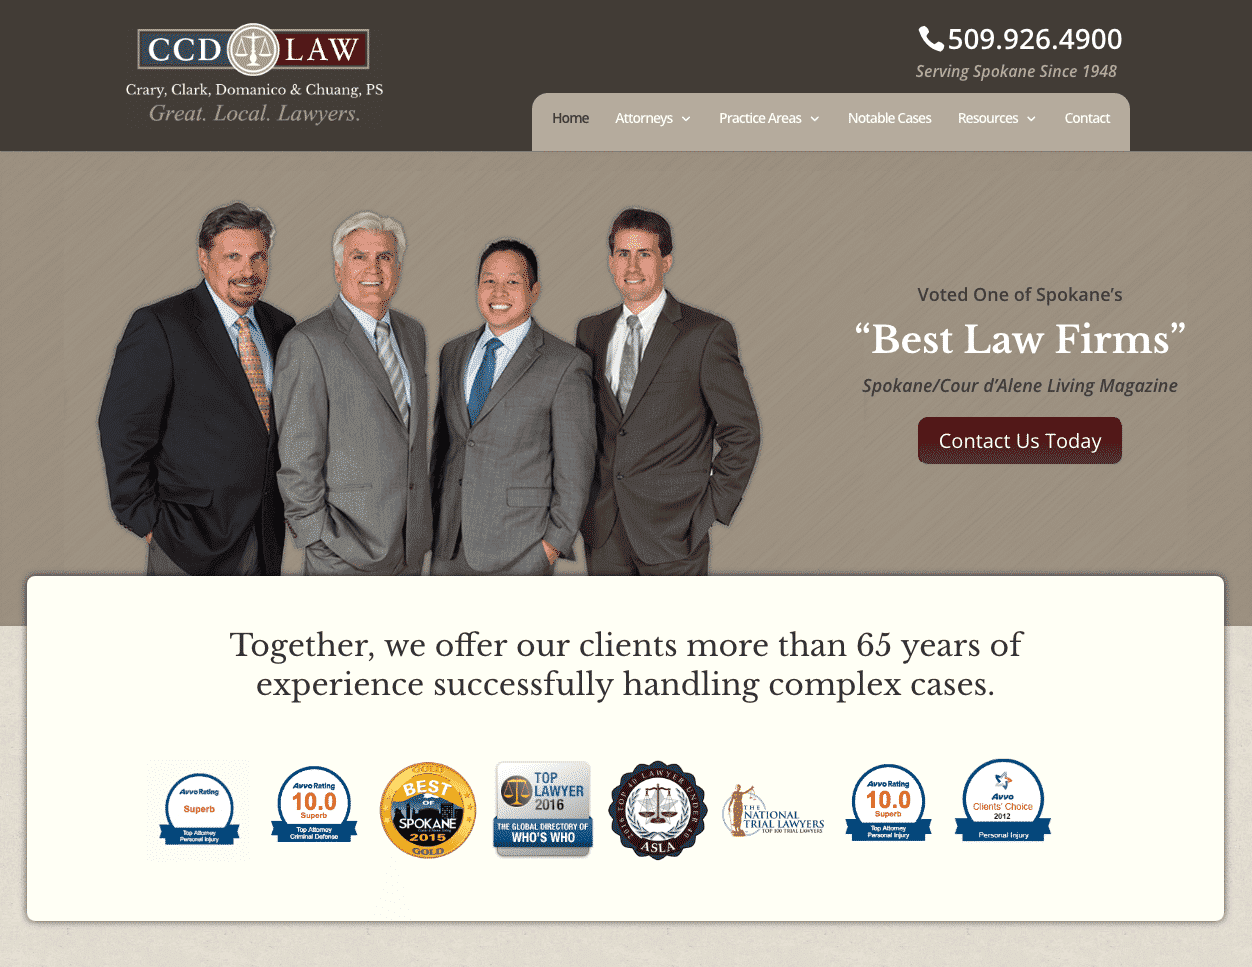 Lawyer Web Design Example of CCD LAW in Spokane, WA